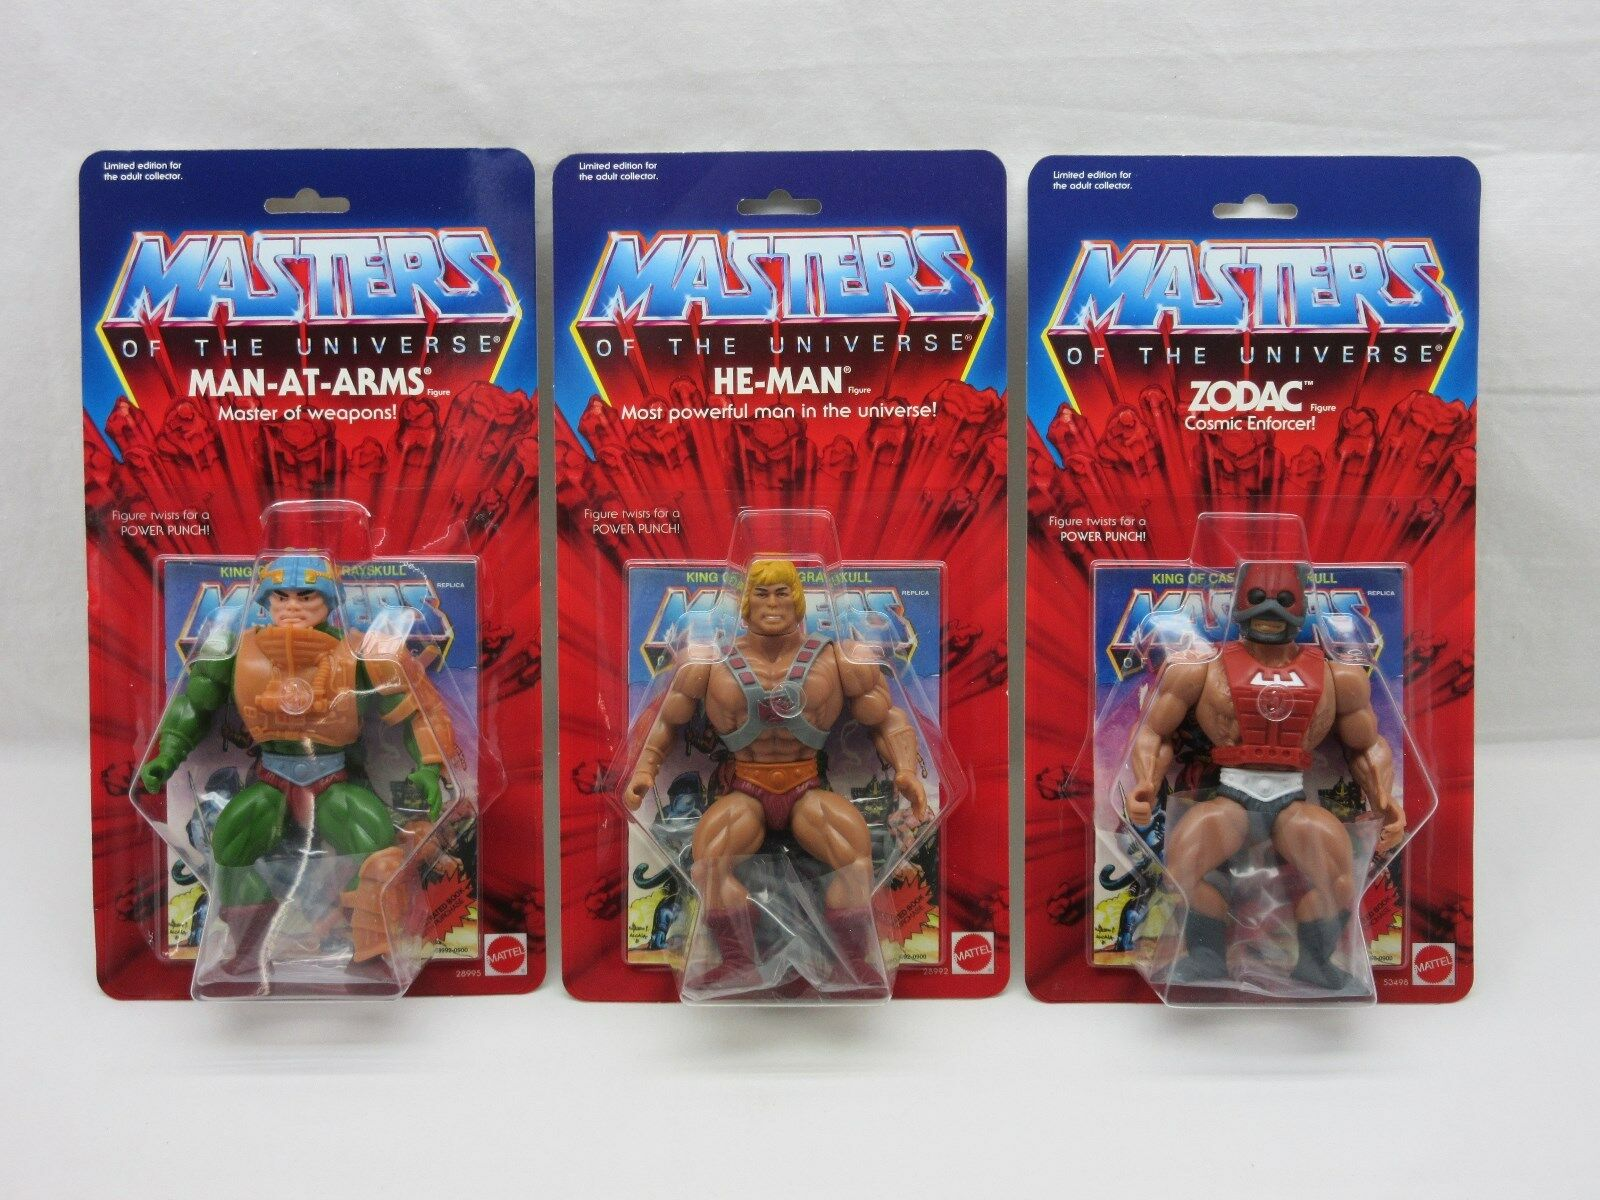 MOTU,Commemorative HE-MAN,MAN-AT-ARMS,ZODAC,MOC,Masters of of HE-MAN,MAN-AT-ARMS,ZODAC,MOC,Masters the Universe,Lot babbae